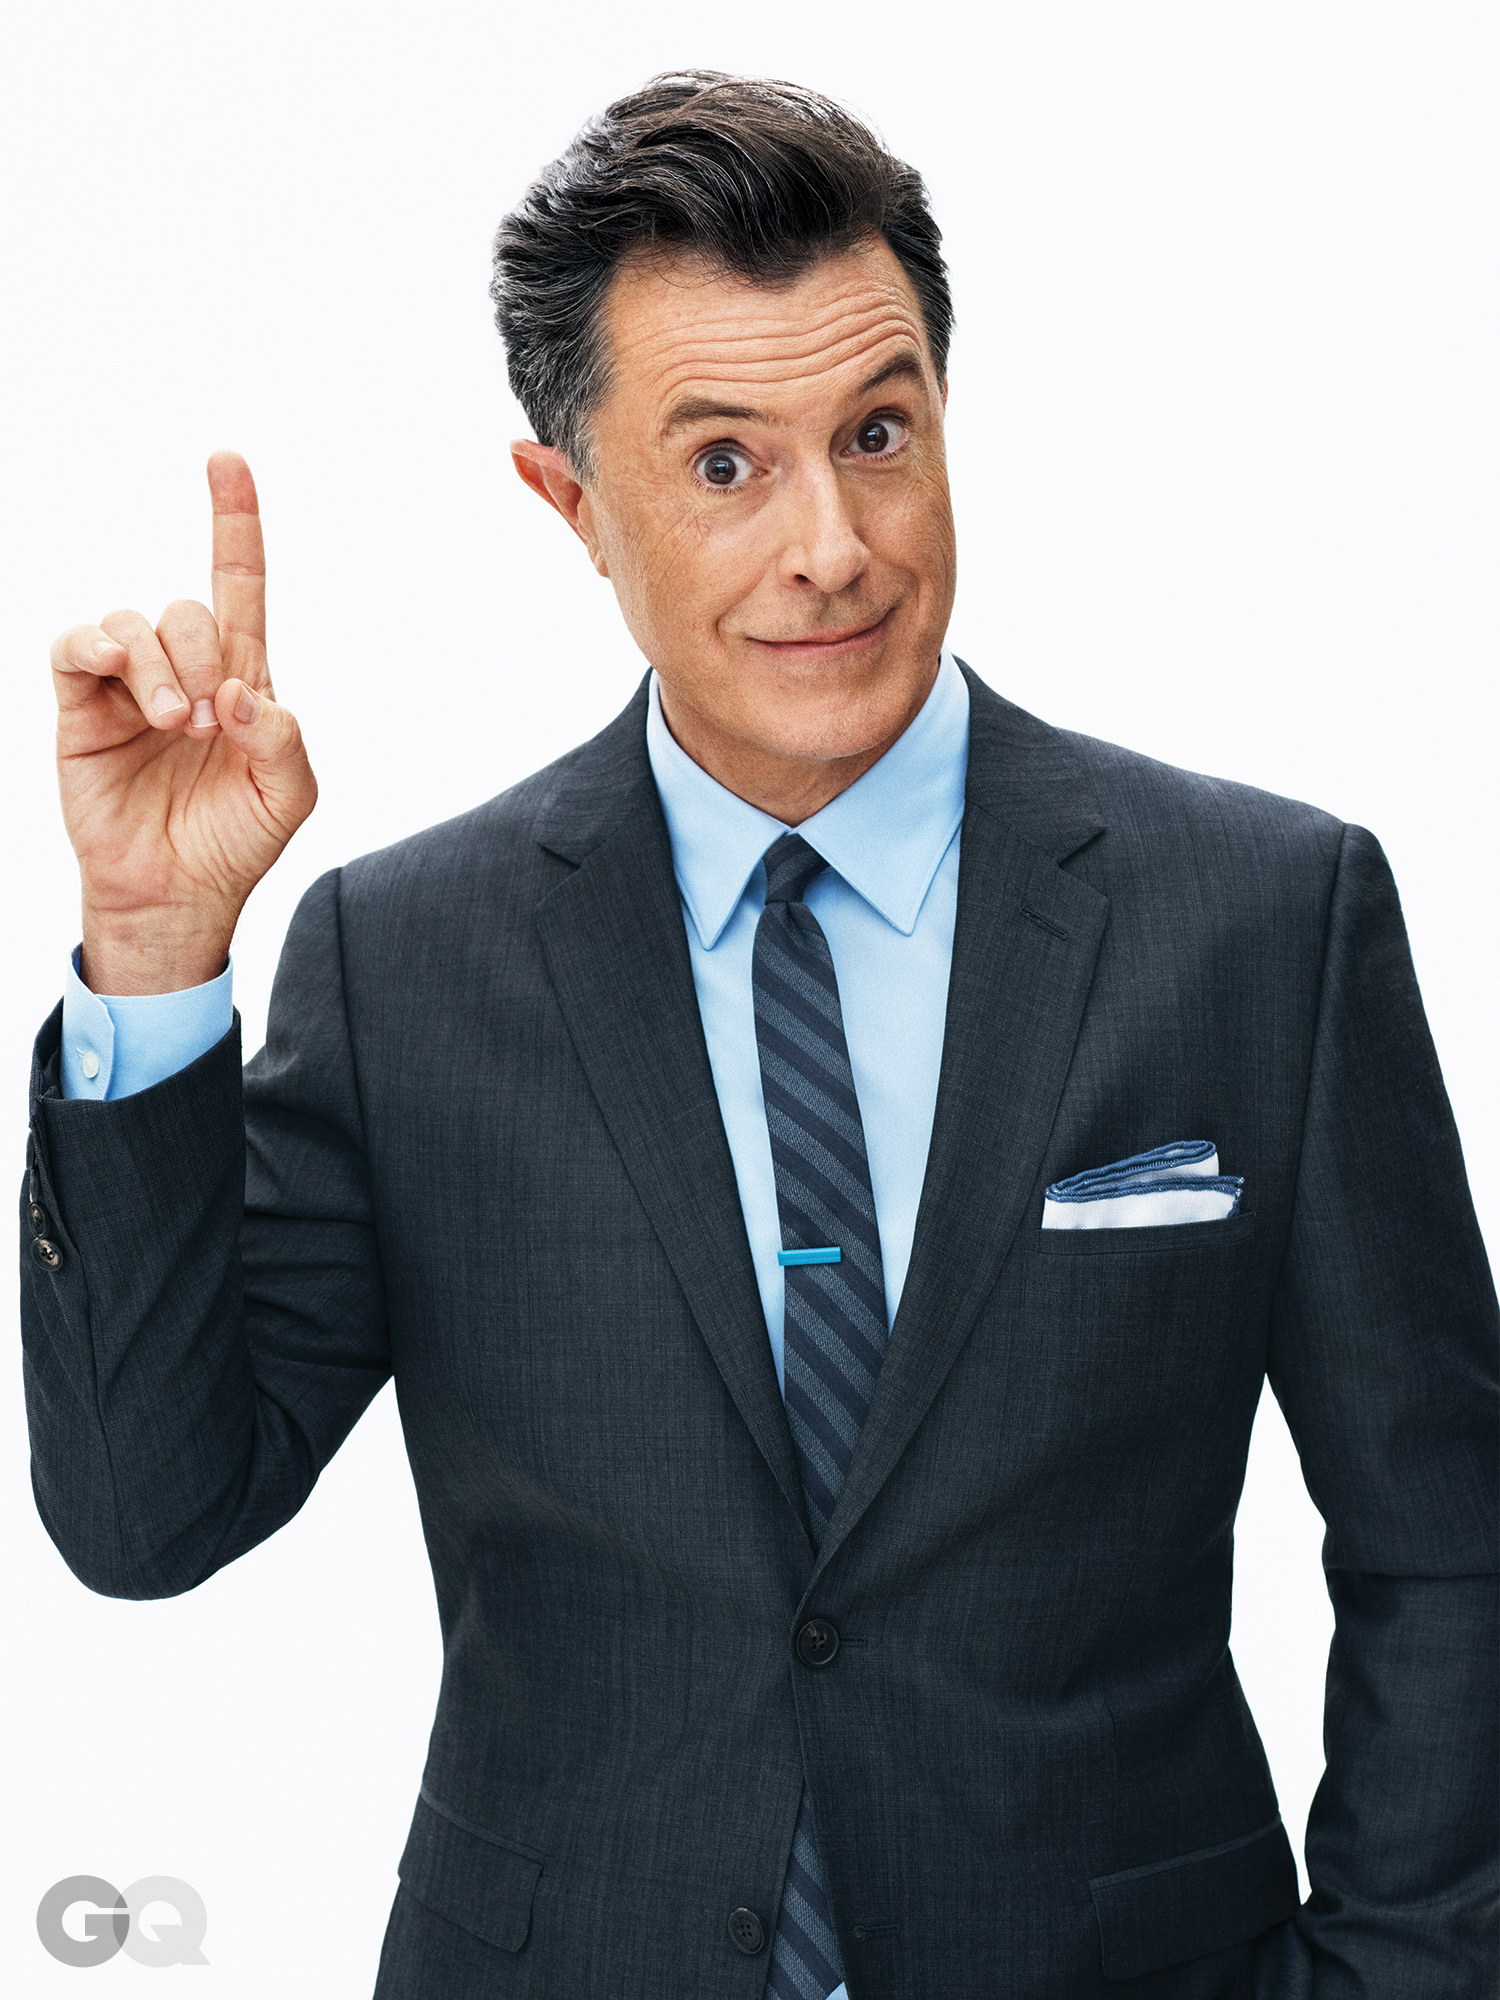 Stephen Colbert wallpapers High Resolution and Quality Download 1500x2000